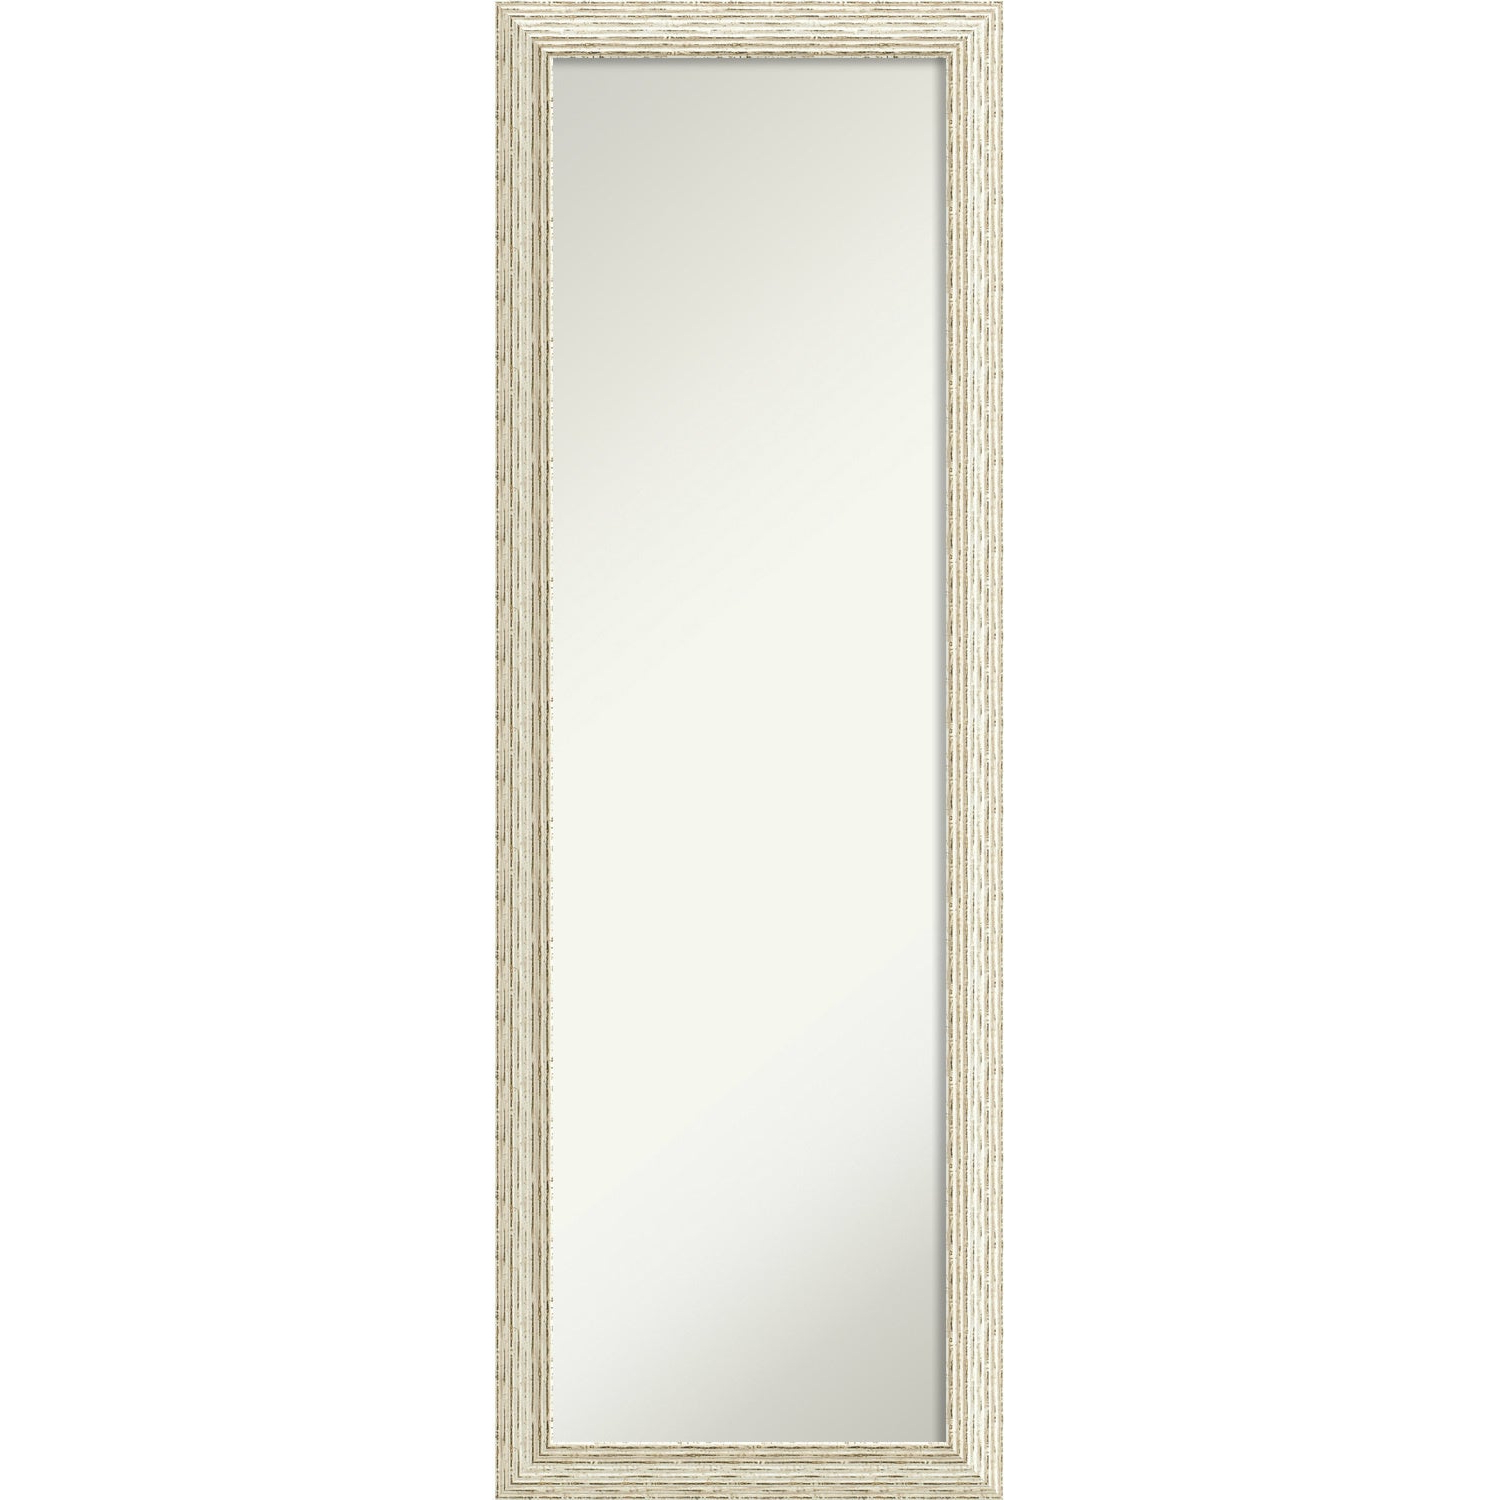 Most Recent Shop On The Door Full Length Wall Mirror, Cape Cod White Wash 18 X In Cheap Full Length Wall Mirrors (View 9 of 20)